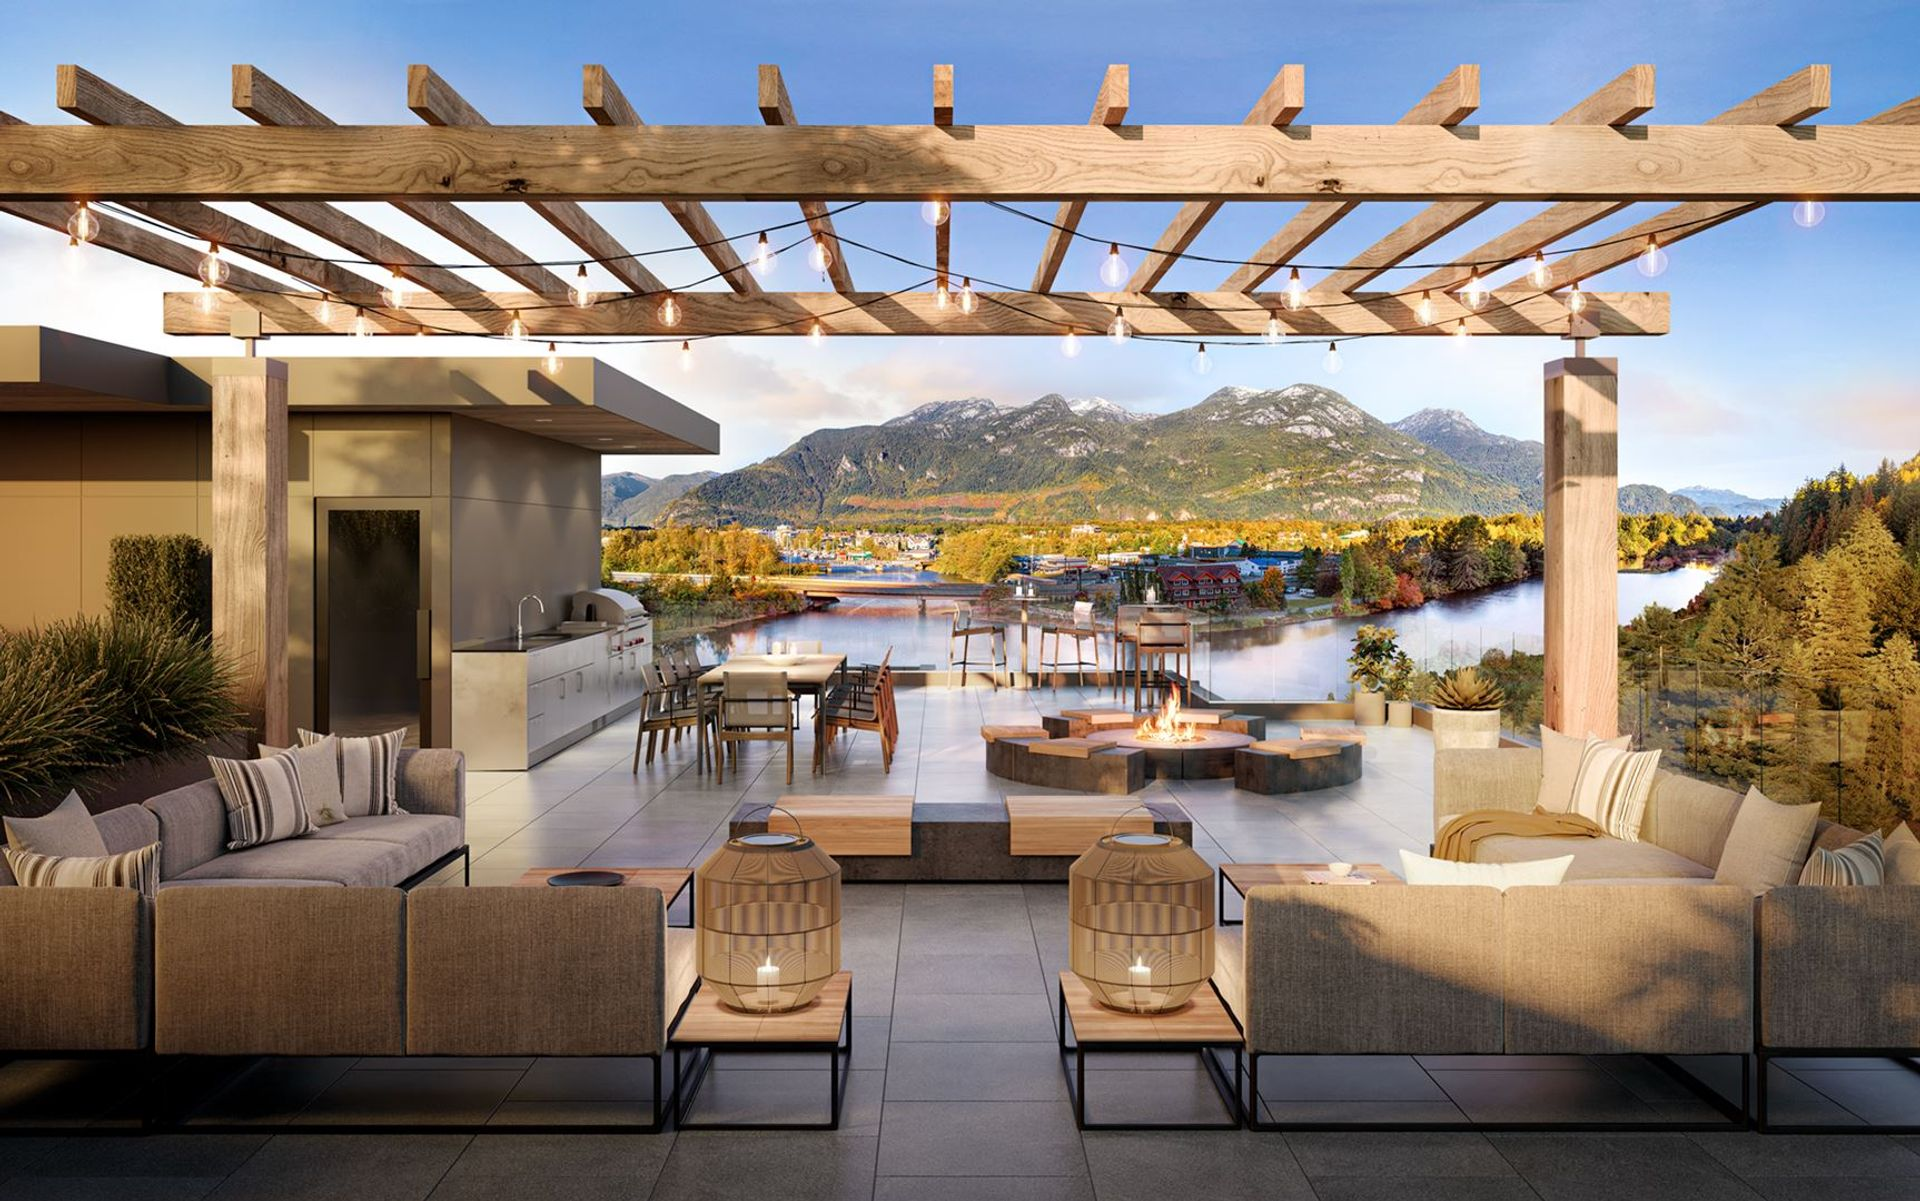 redbridge-sunset-terrace-rendering at Redbridge (1500 Scott Crescent, Squamish)